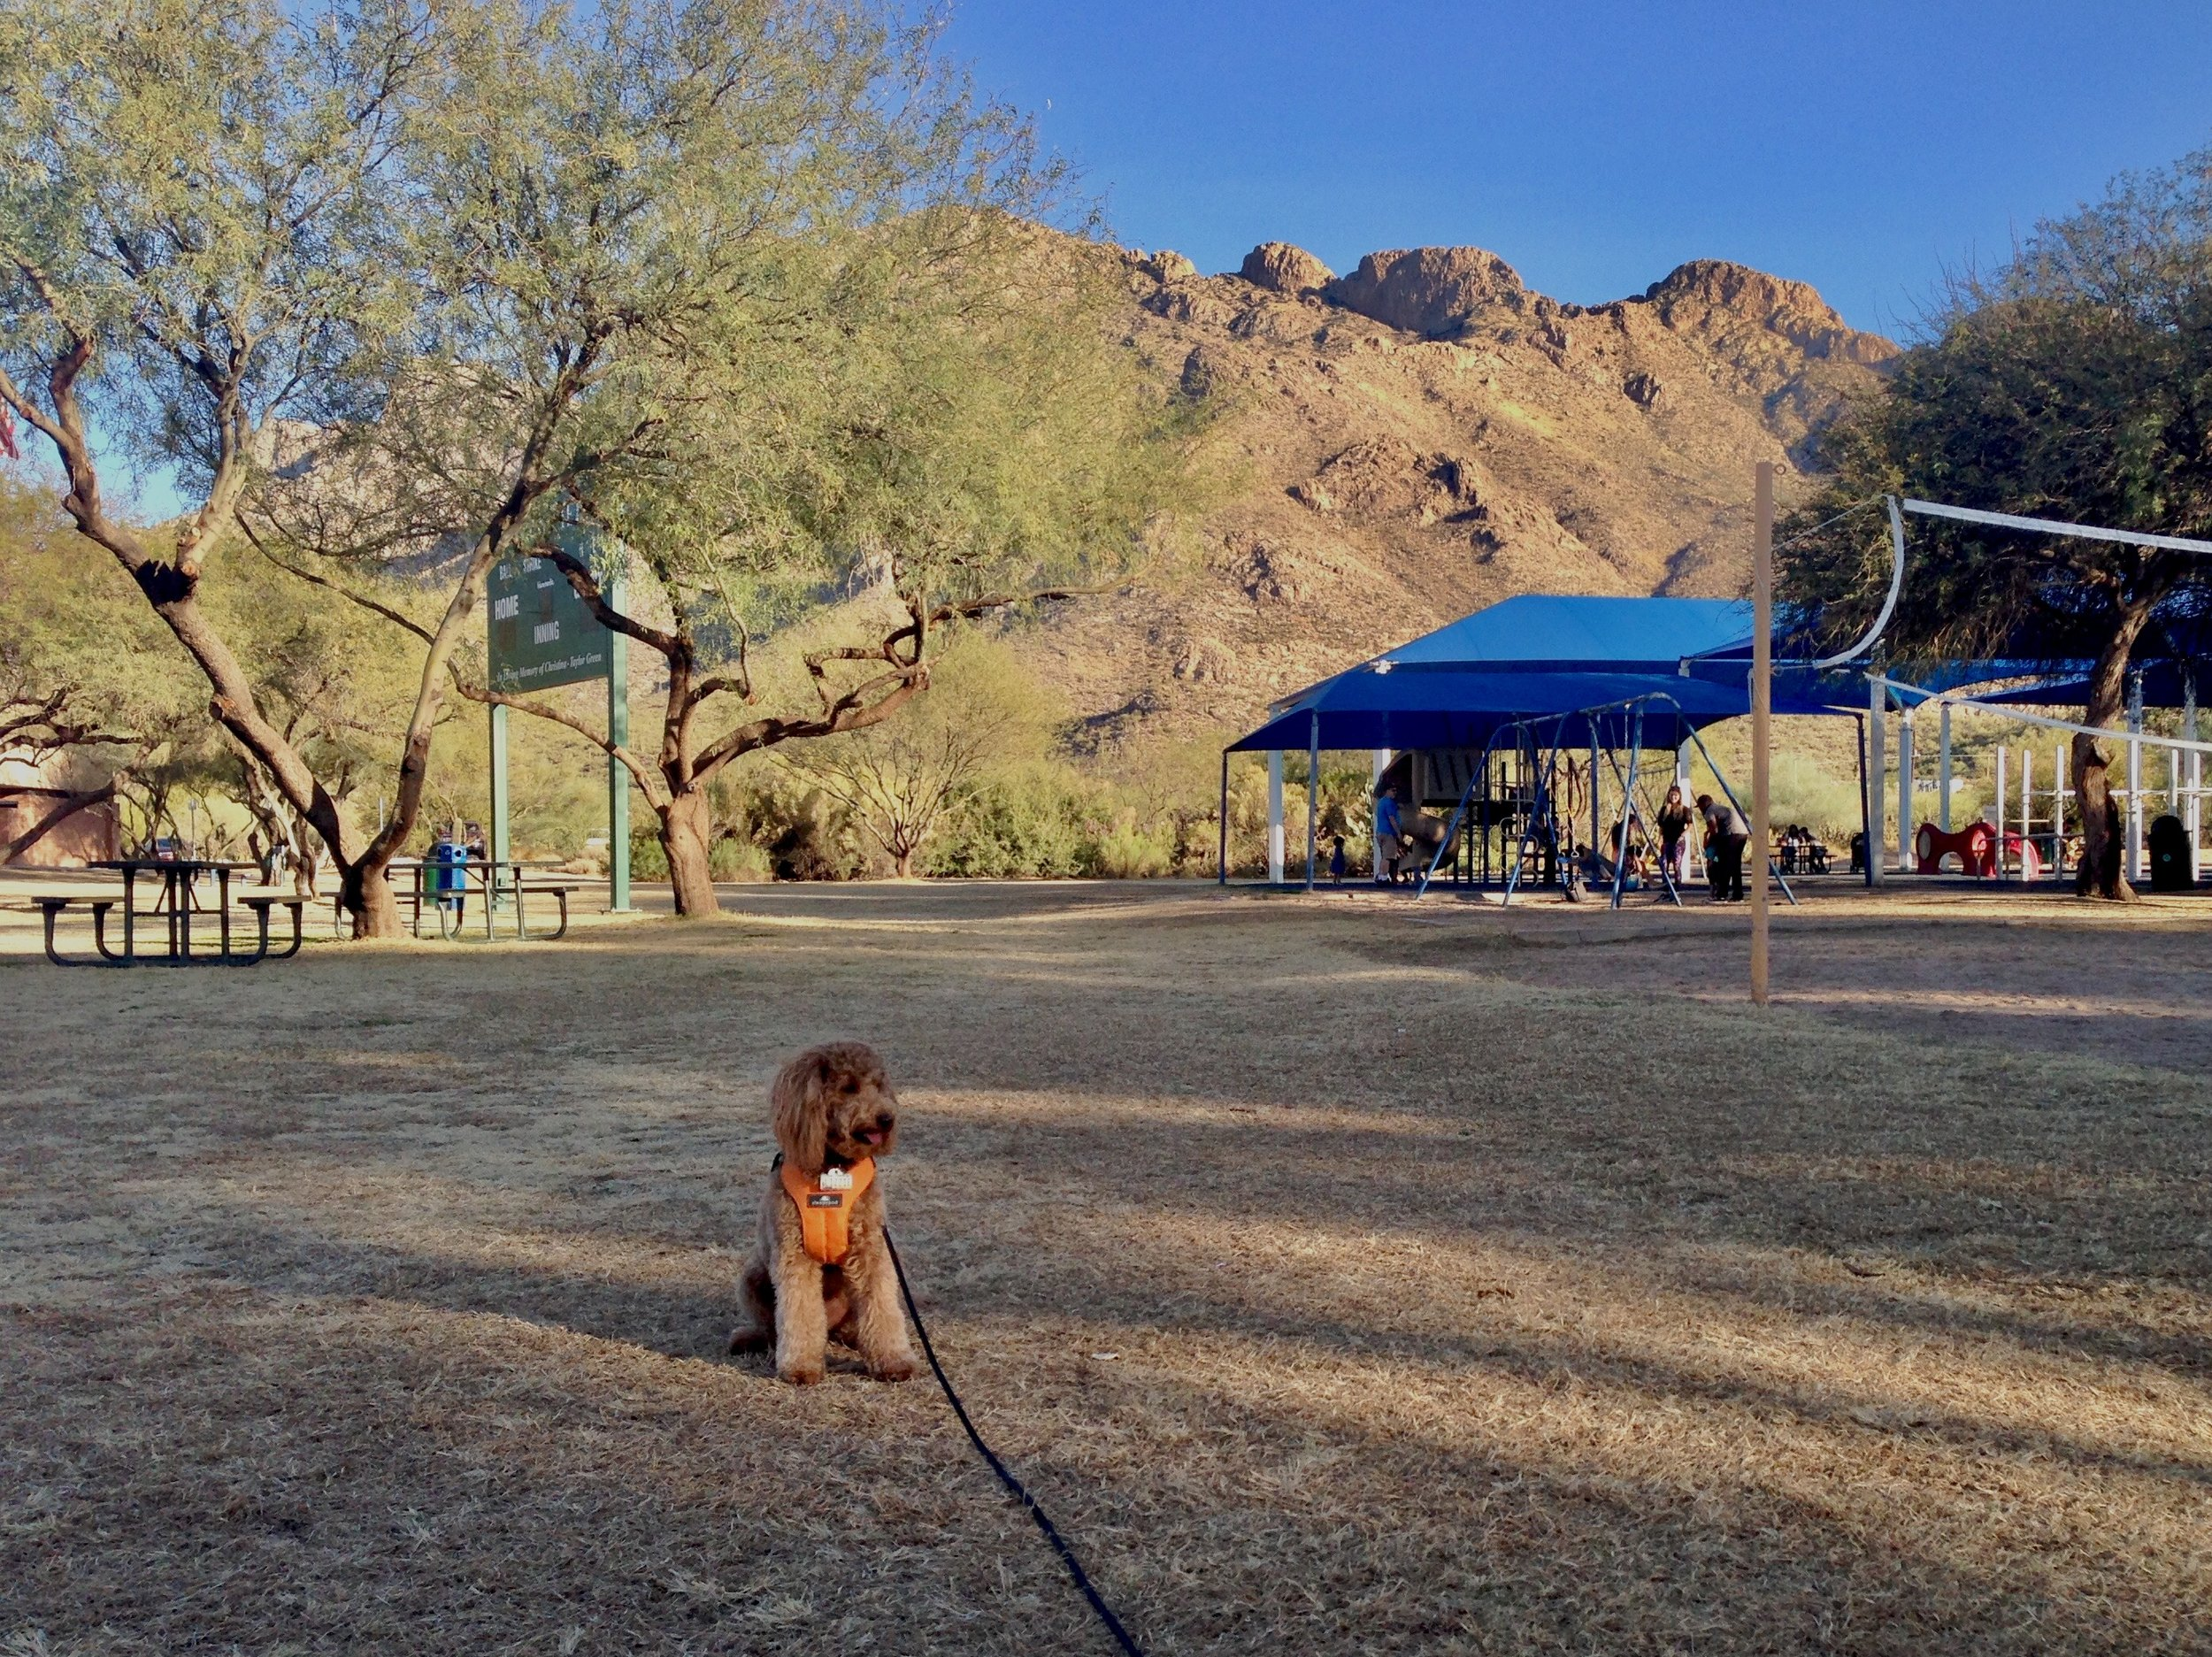 Lizzie McSquare holds a sit-stay on the long lead in front of the Santa Catalina Mountains during Dog Obedience Park Class in Tucson Arizona.